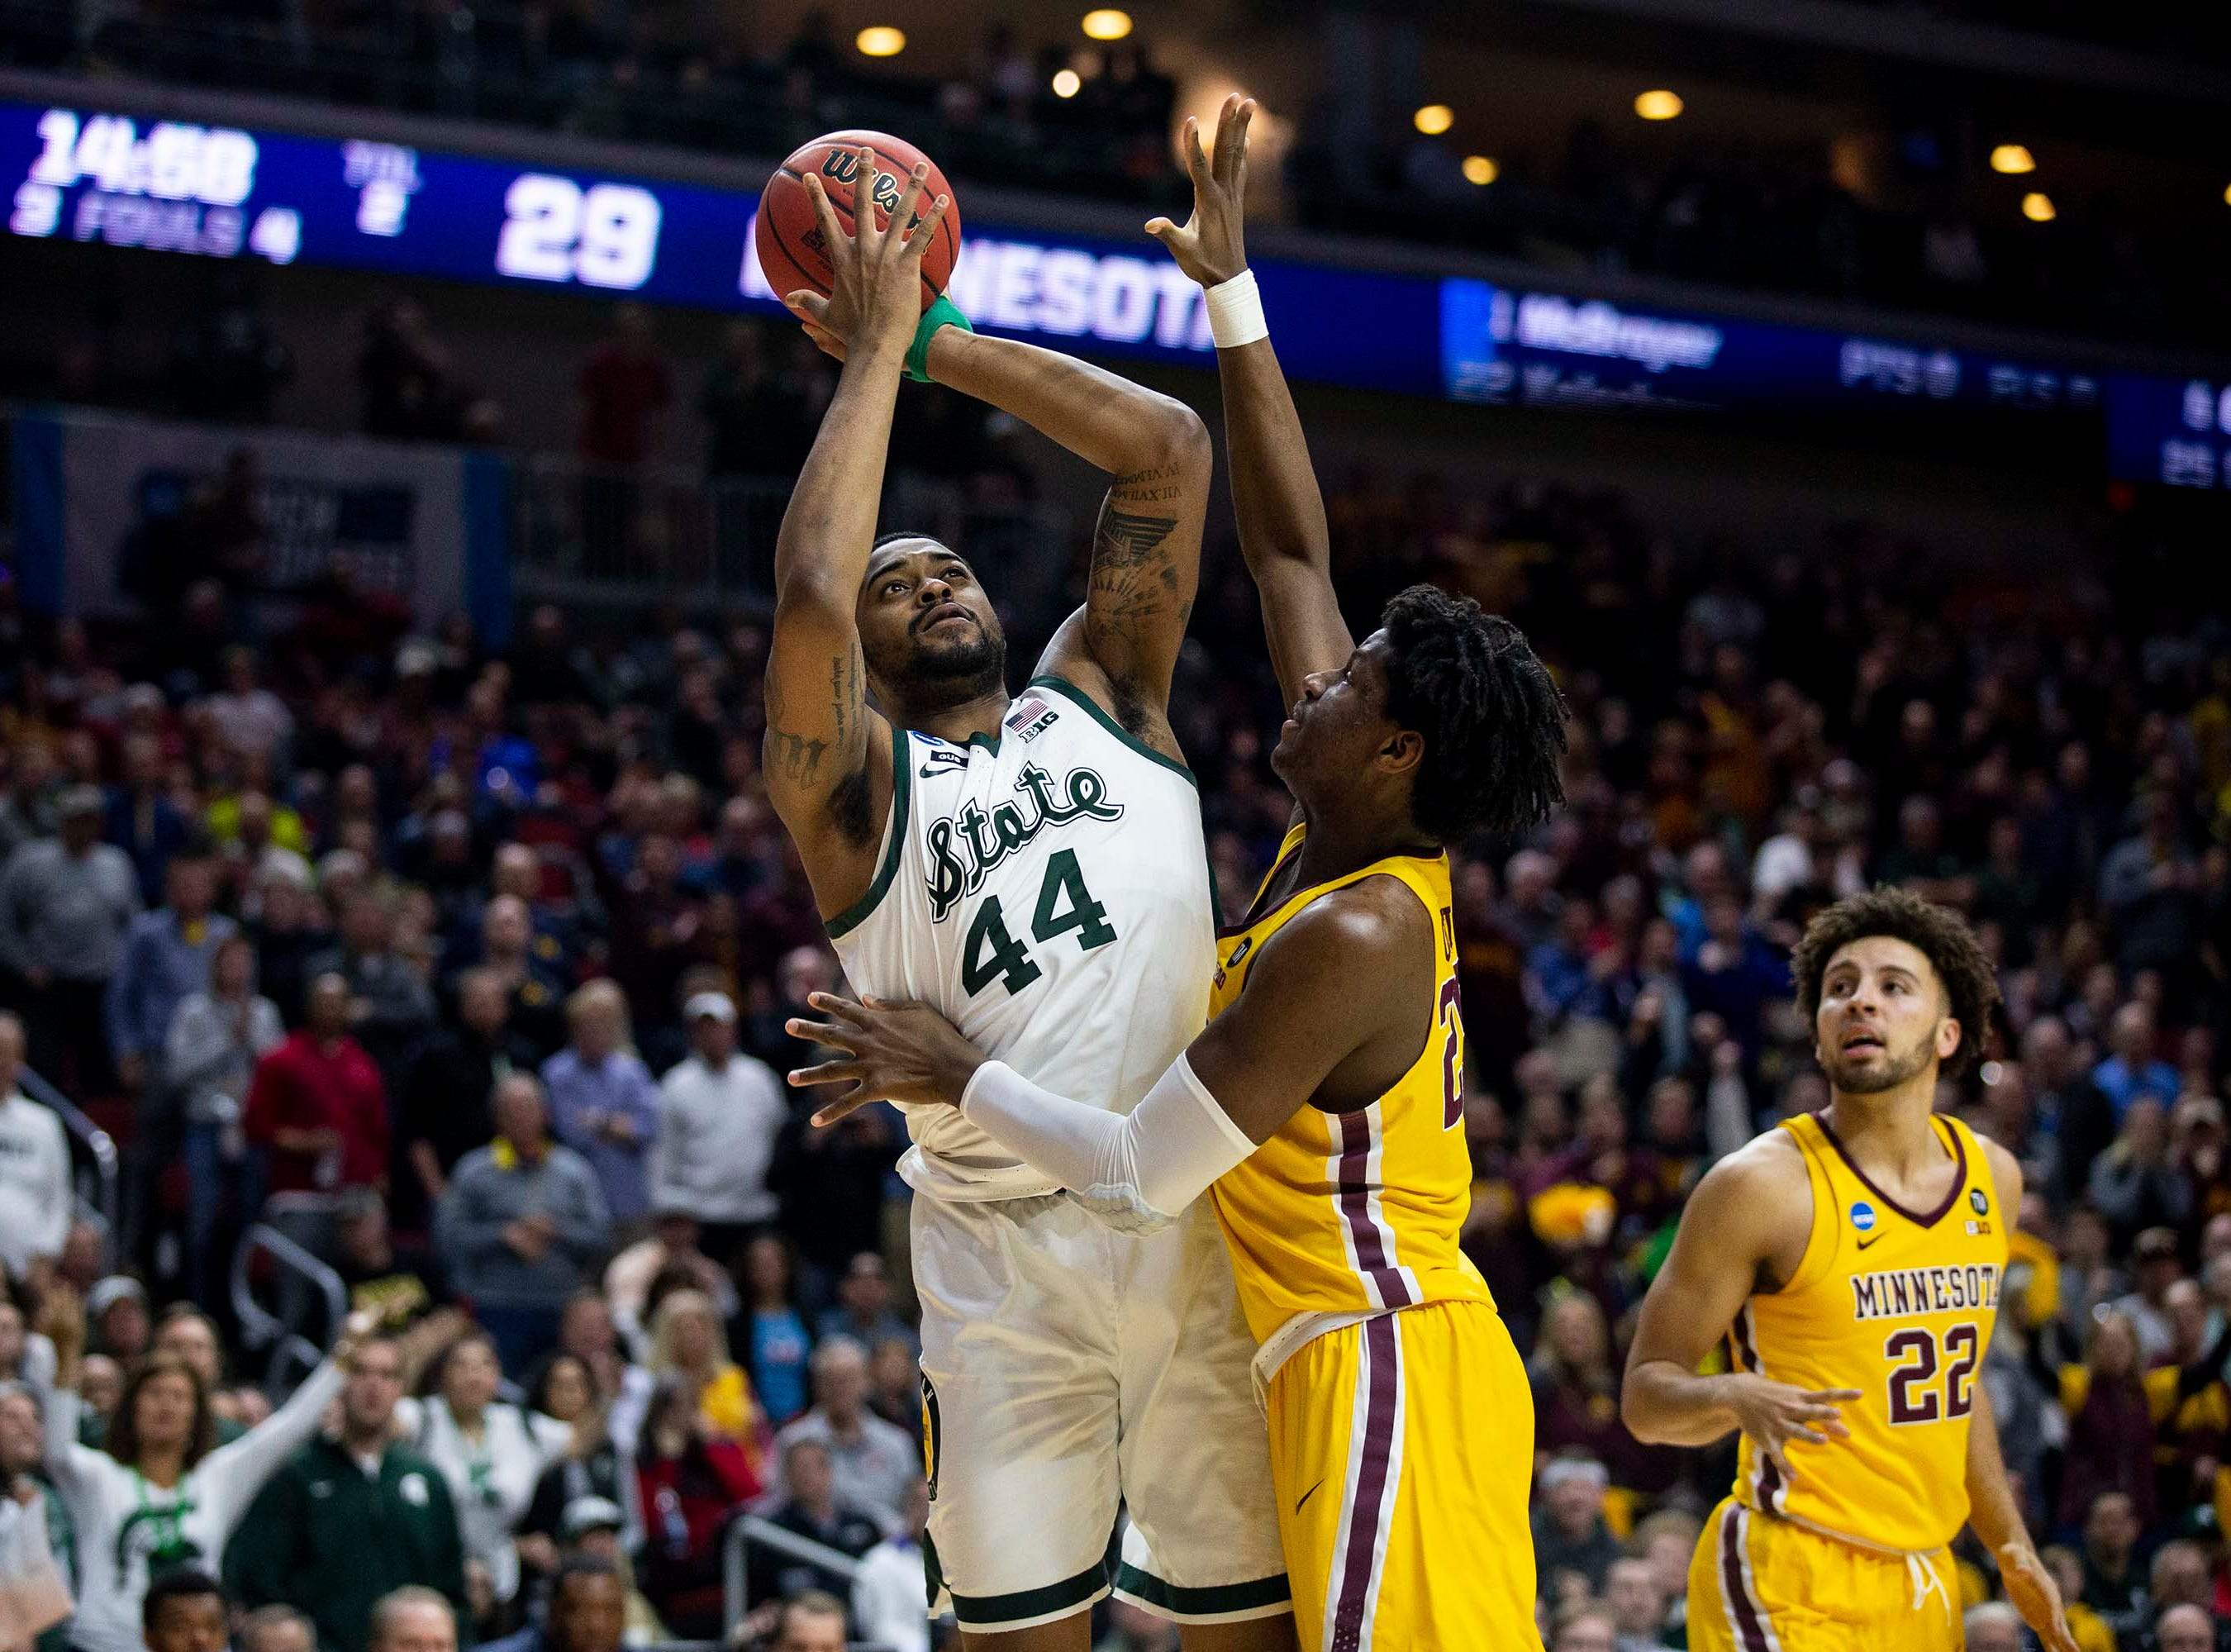 Michigan State's Nick Ward shoots the ball during the NCAA Tournament second-round match-up between Minnesota and Michigan State on Saturday, March 23, 2019, in Wells Fargo Arena in Des Moines, Iowa.